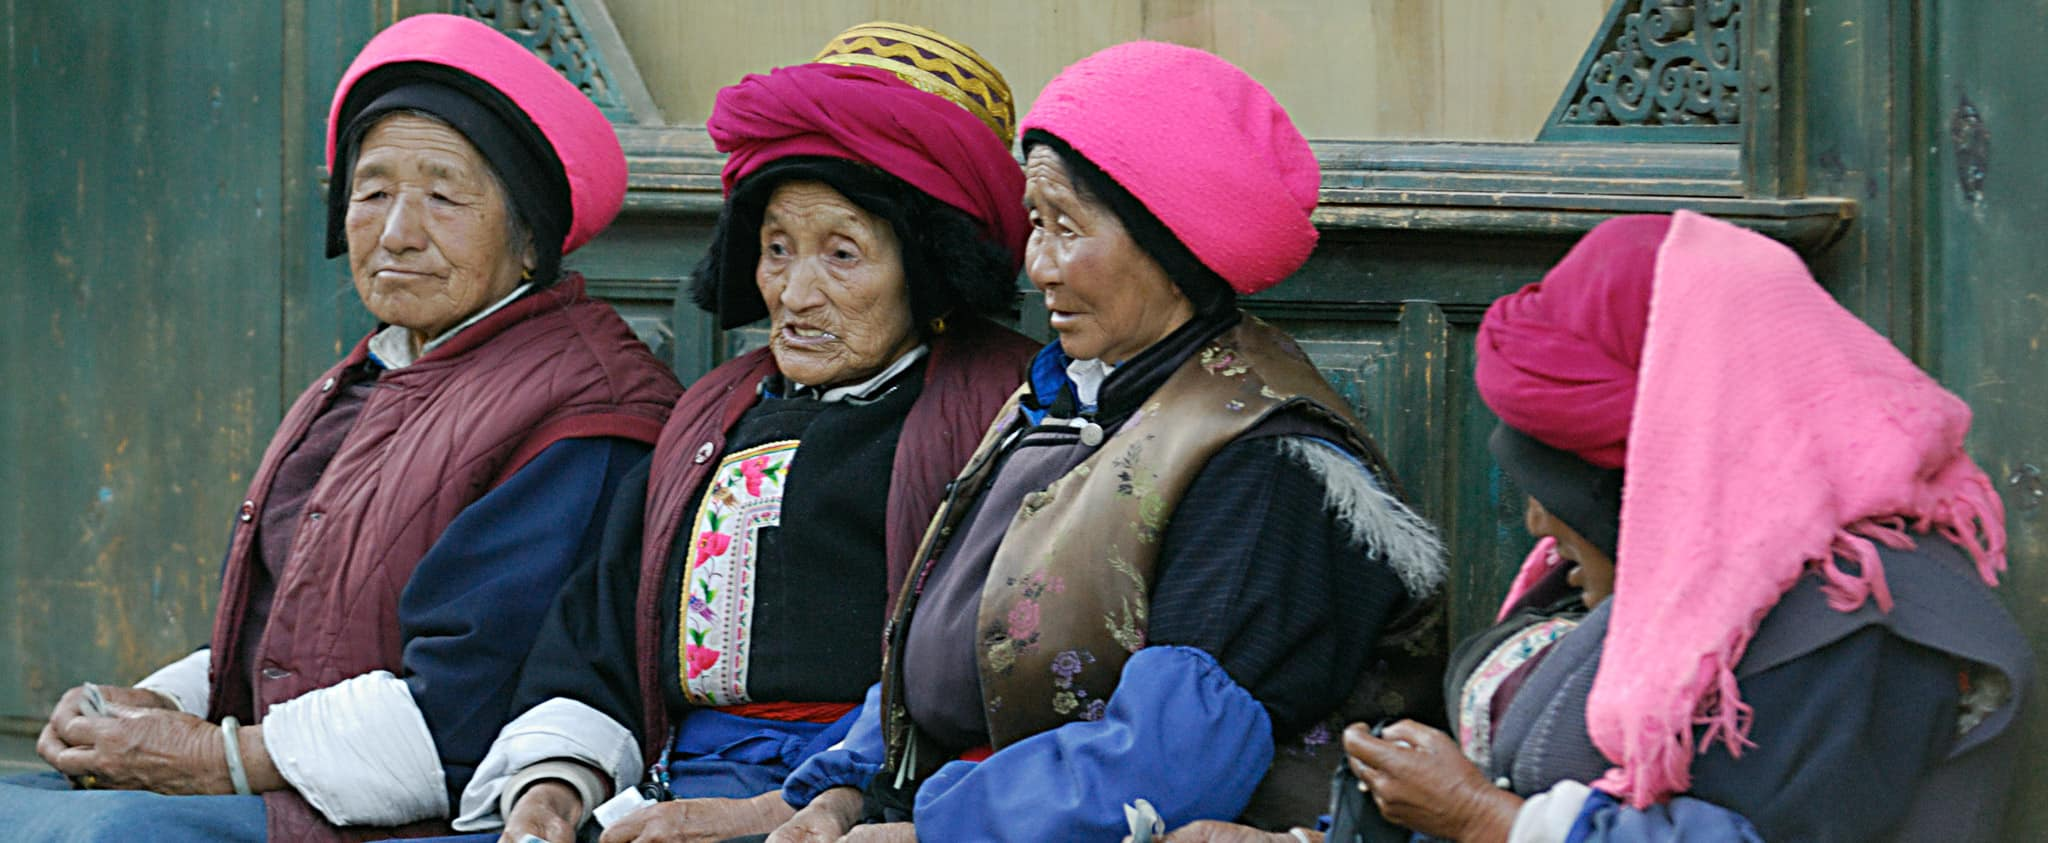 Shangri-la elderly ladies